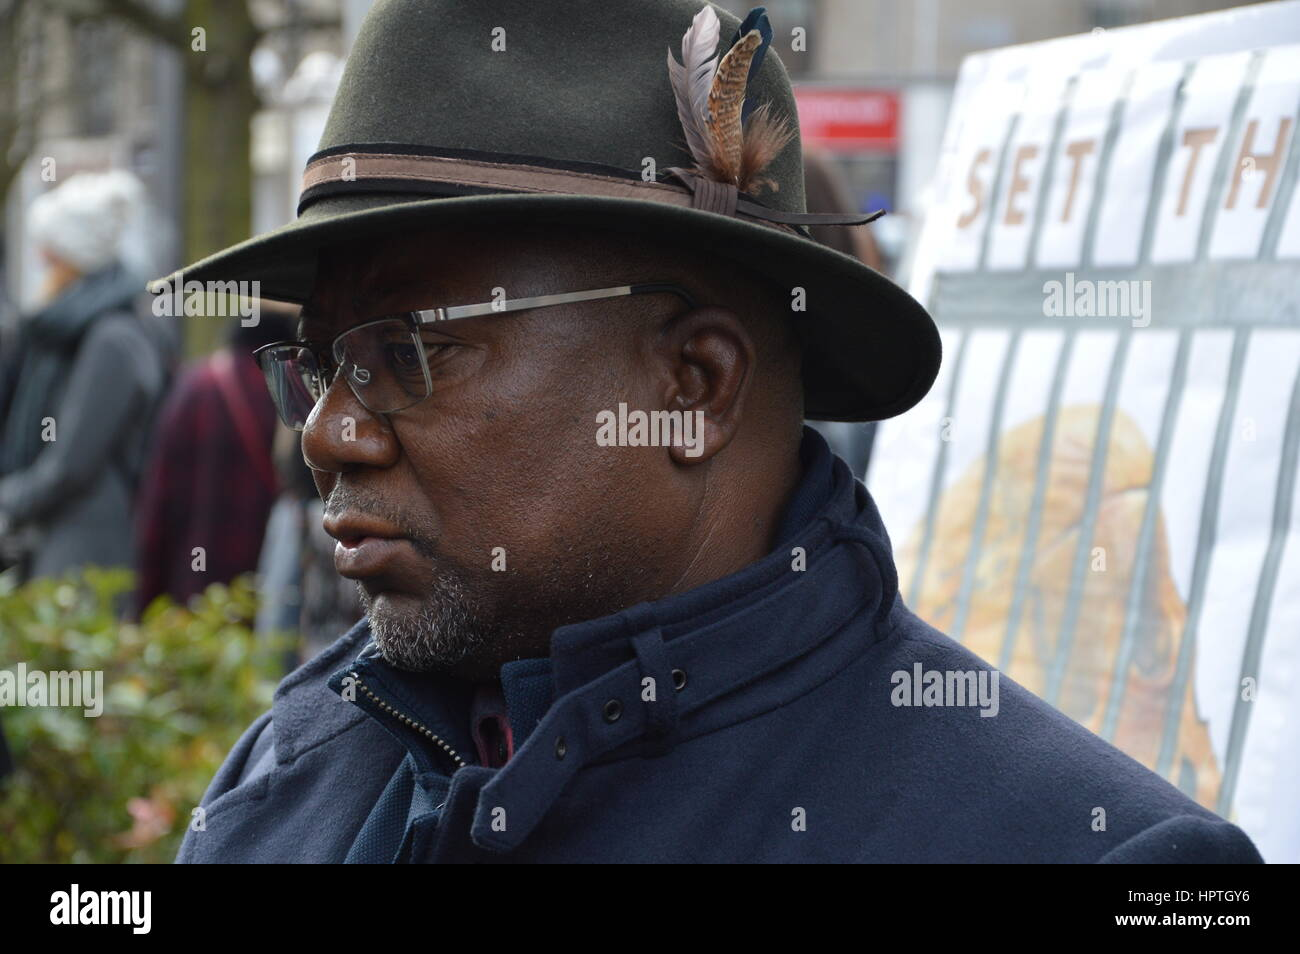 Berlin, Germany. 25th Feb, 2017. The Memorial March for the African Victims of Colonialism in berlin, Germany. Credit: - Stock Image